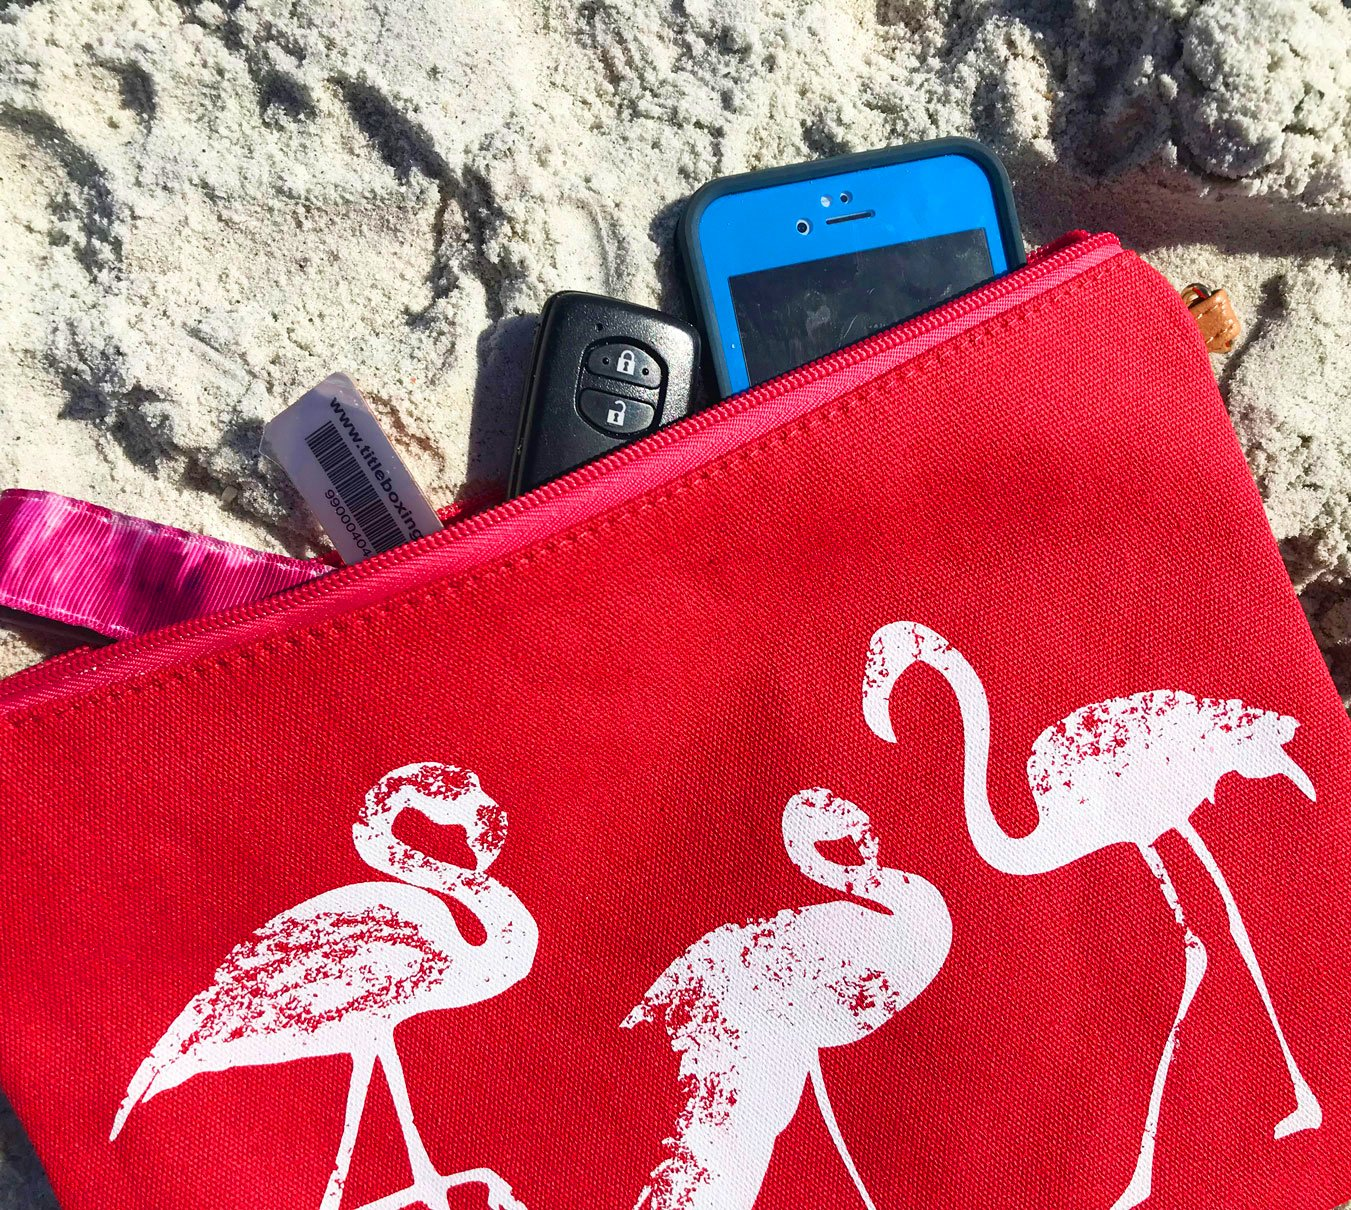 XL Large Cotton Canvas Flamingo Tote & Accessory Bag for Beach, Travel & Every Day by Kodi Lifestyle Collection (Image #4)